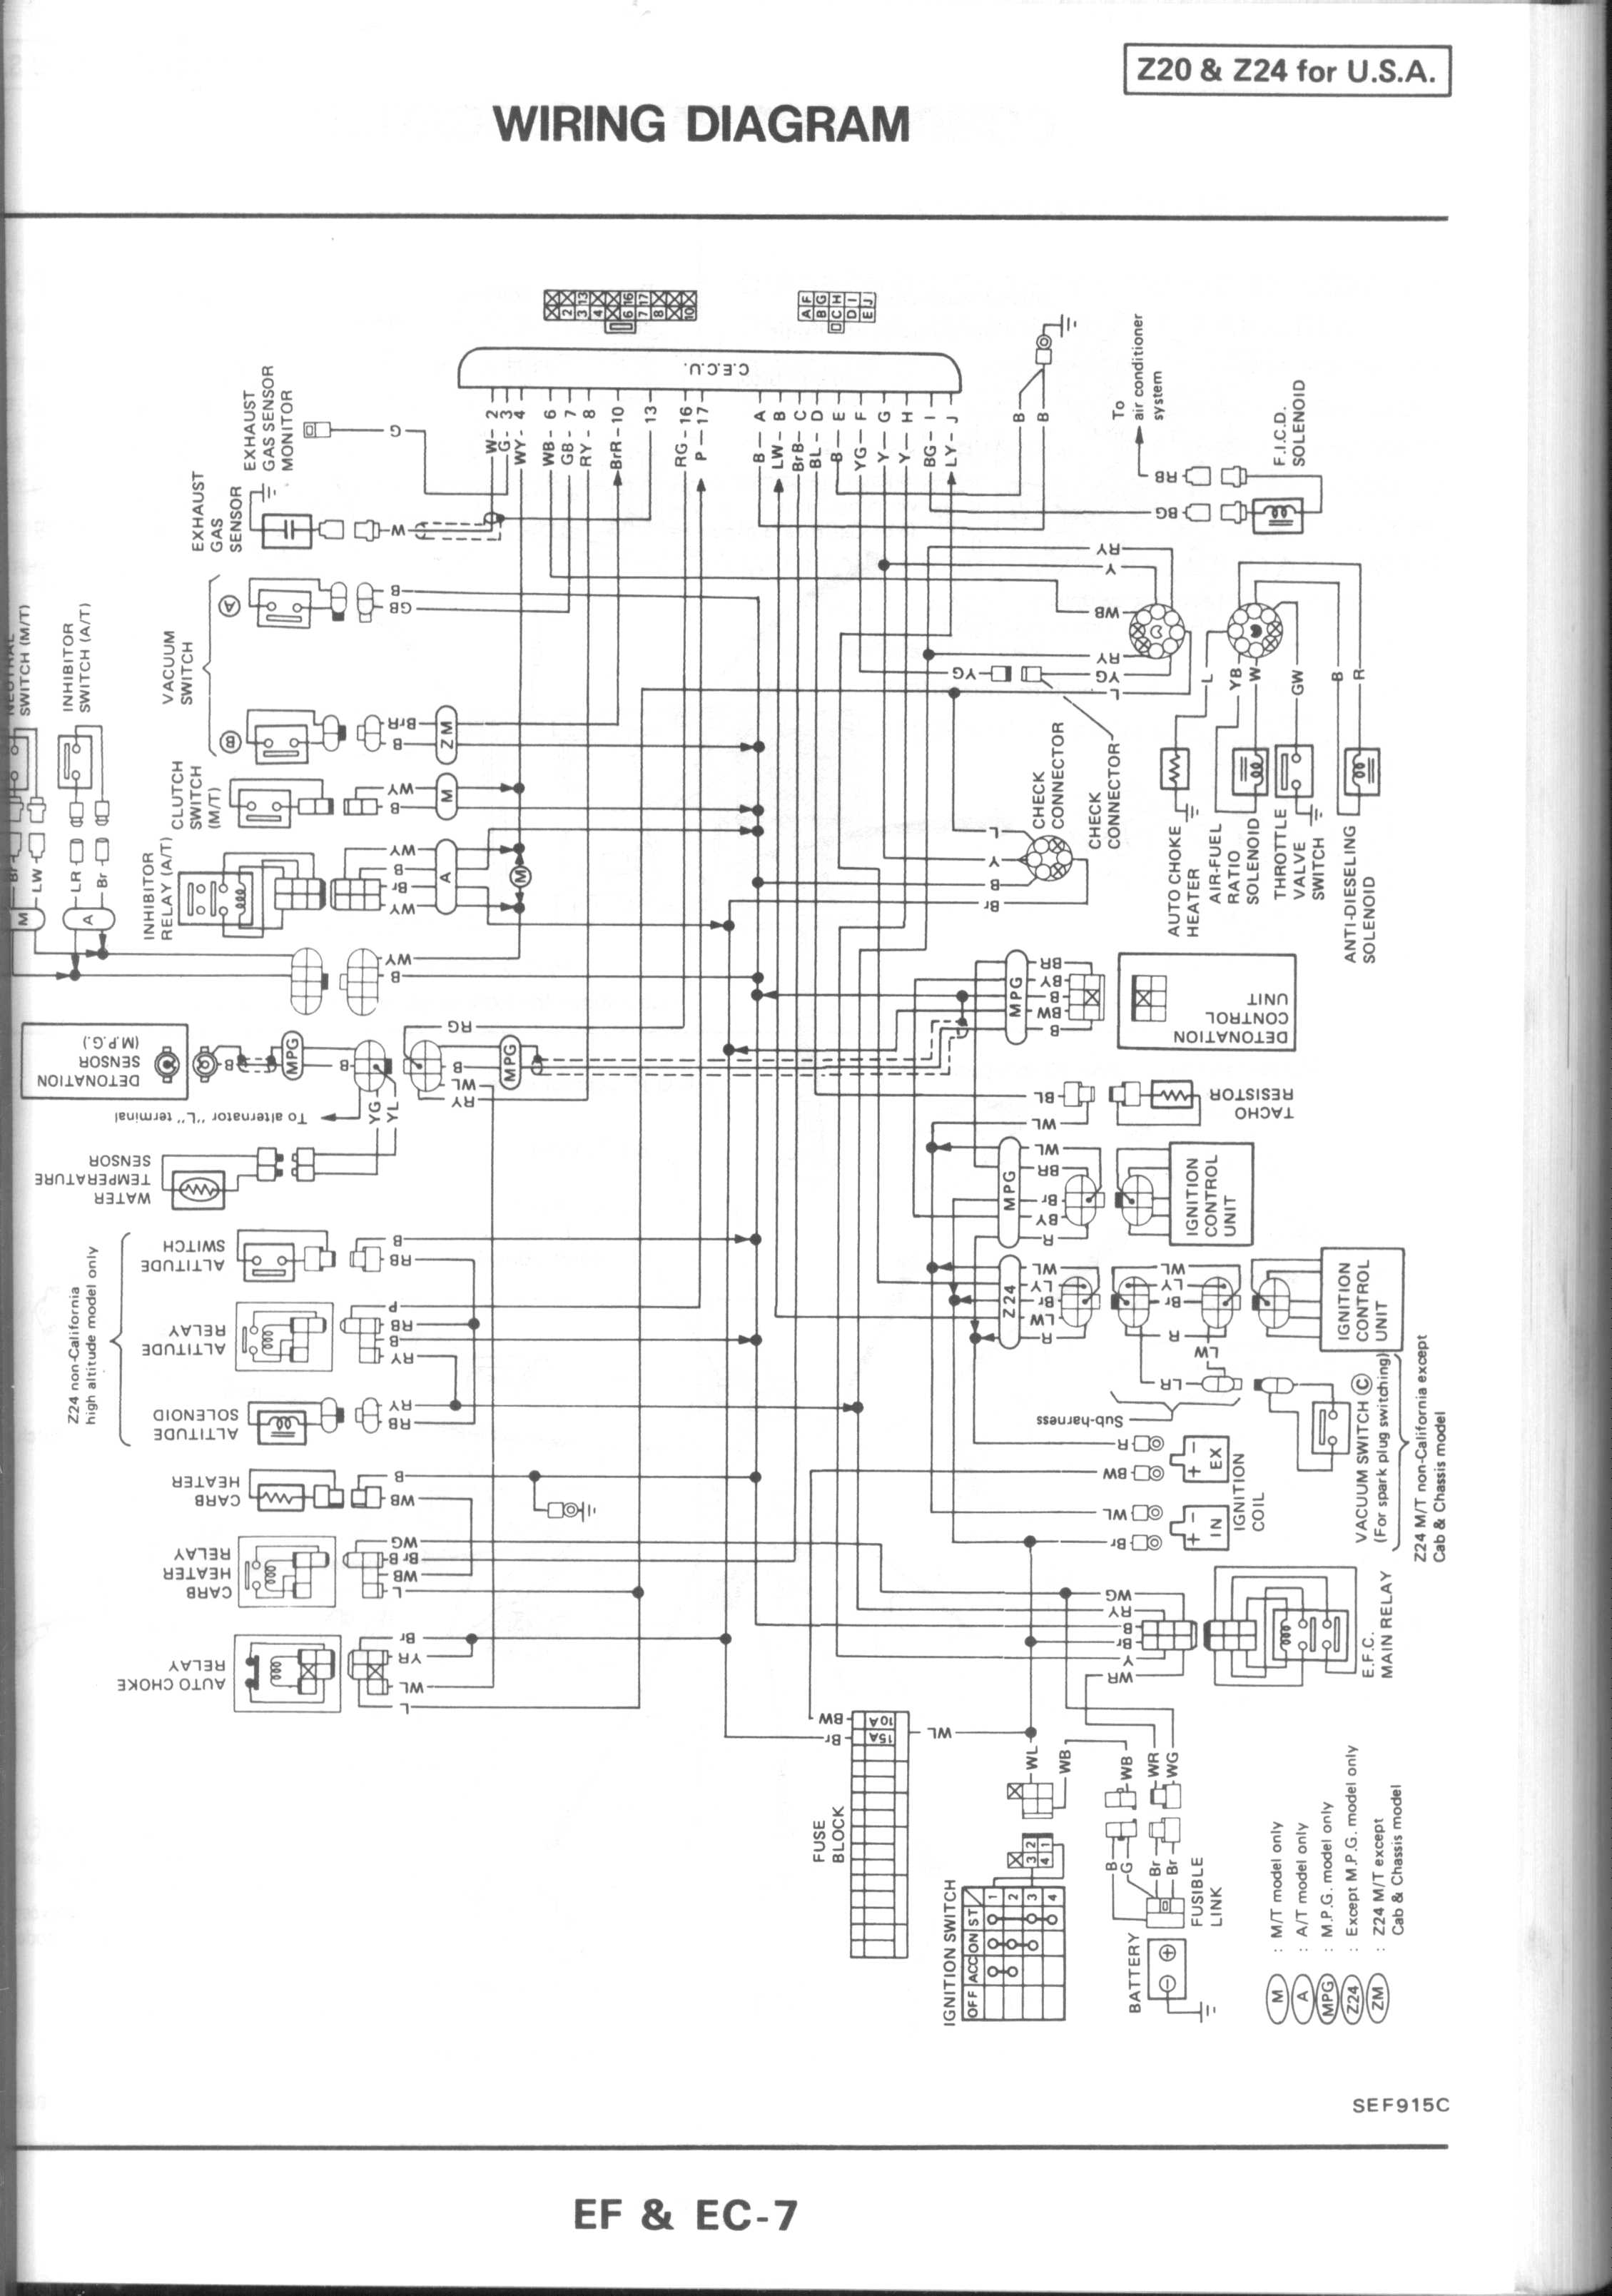 wiring diagram nissan yd25 wiring diagram 1984 nissan pickup wiring diagram wiring diagrams bestnissan wiring diagrams 1988 wiring diagram data 1984 nissan